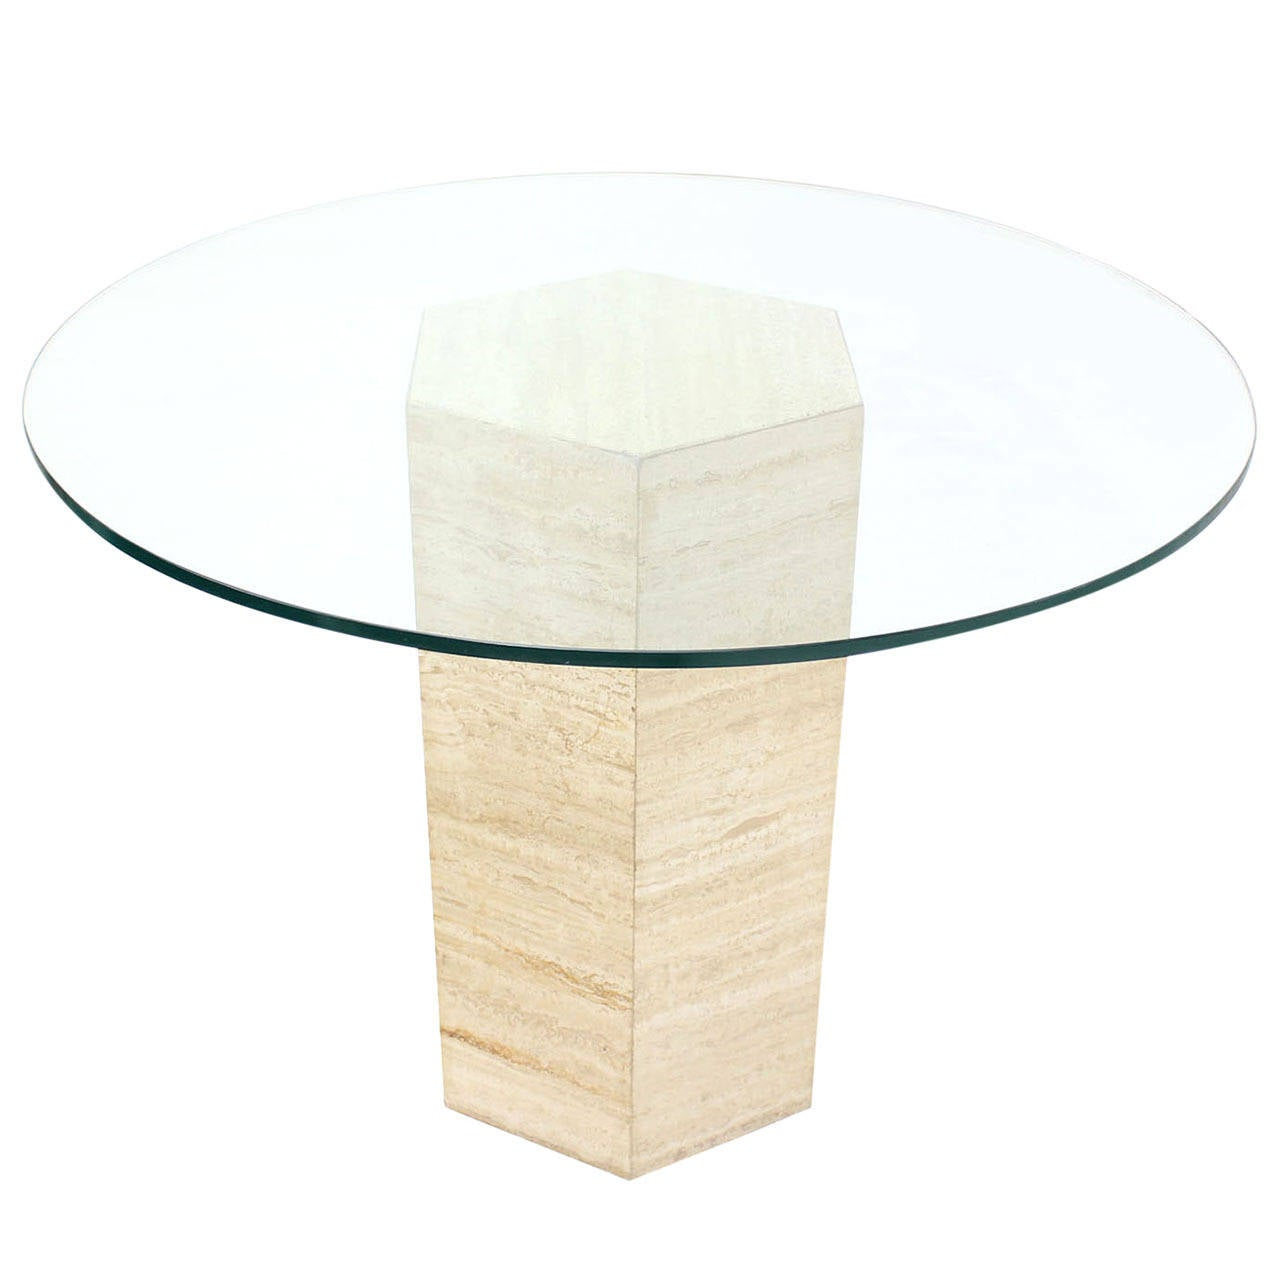 Hexagon travertine pedestal base and round glass top center table at 1stdibs - Ceramic pedestal table base ...